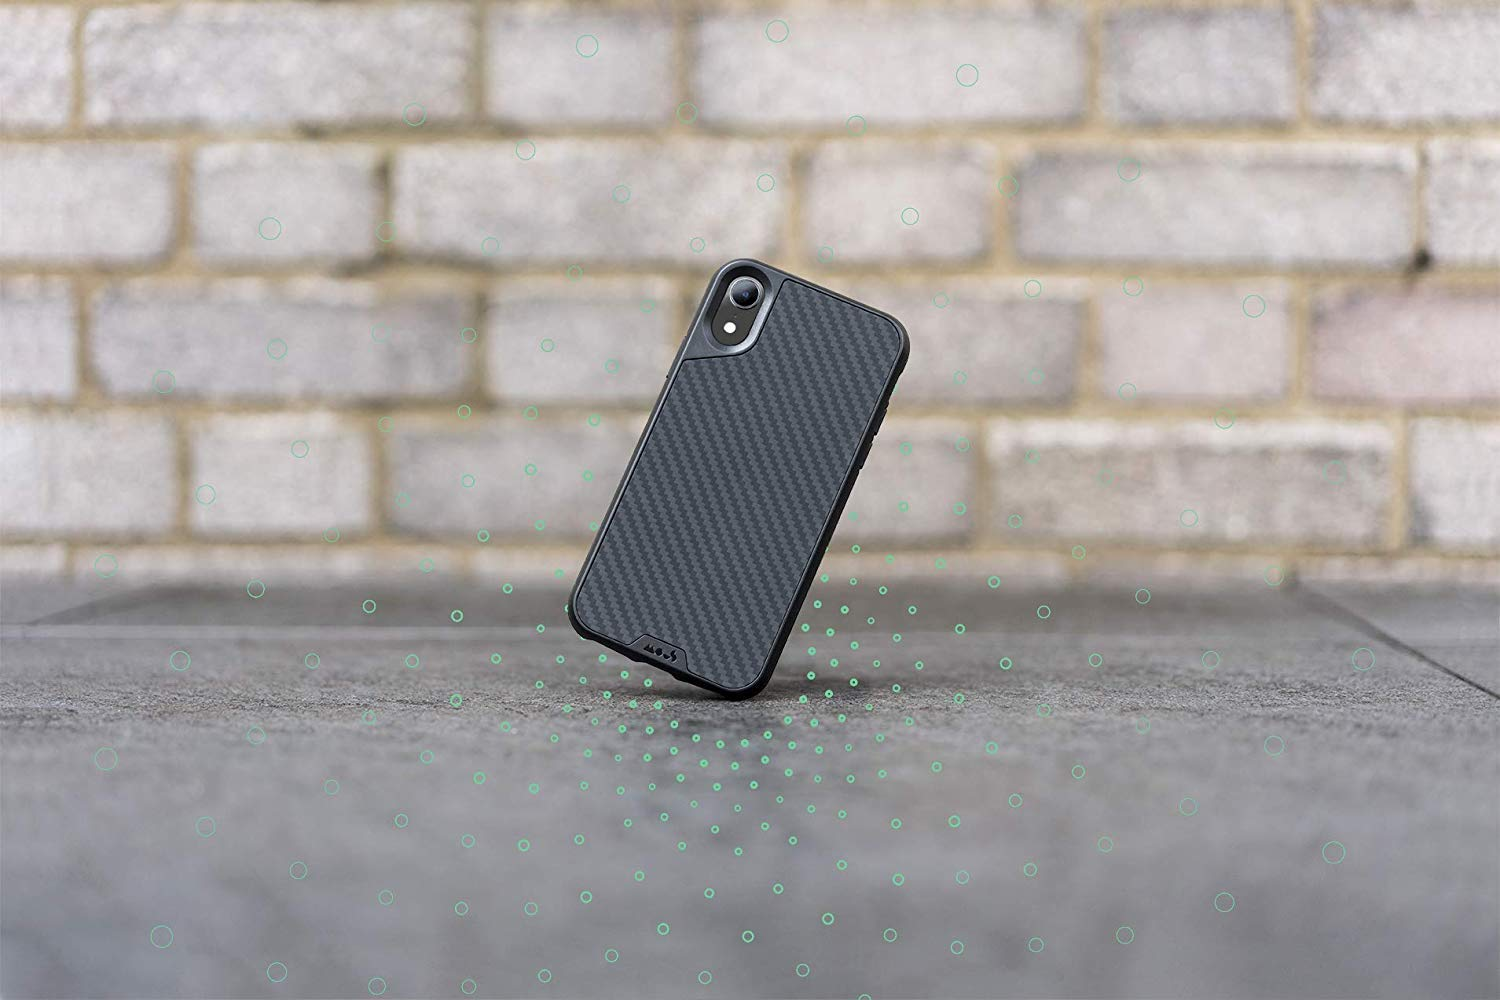 MOUS Protective Case for iPhone XR - Aramid Fiber - Screen Protector Inc by MOUS